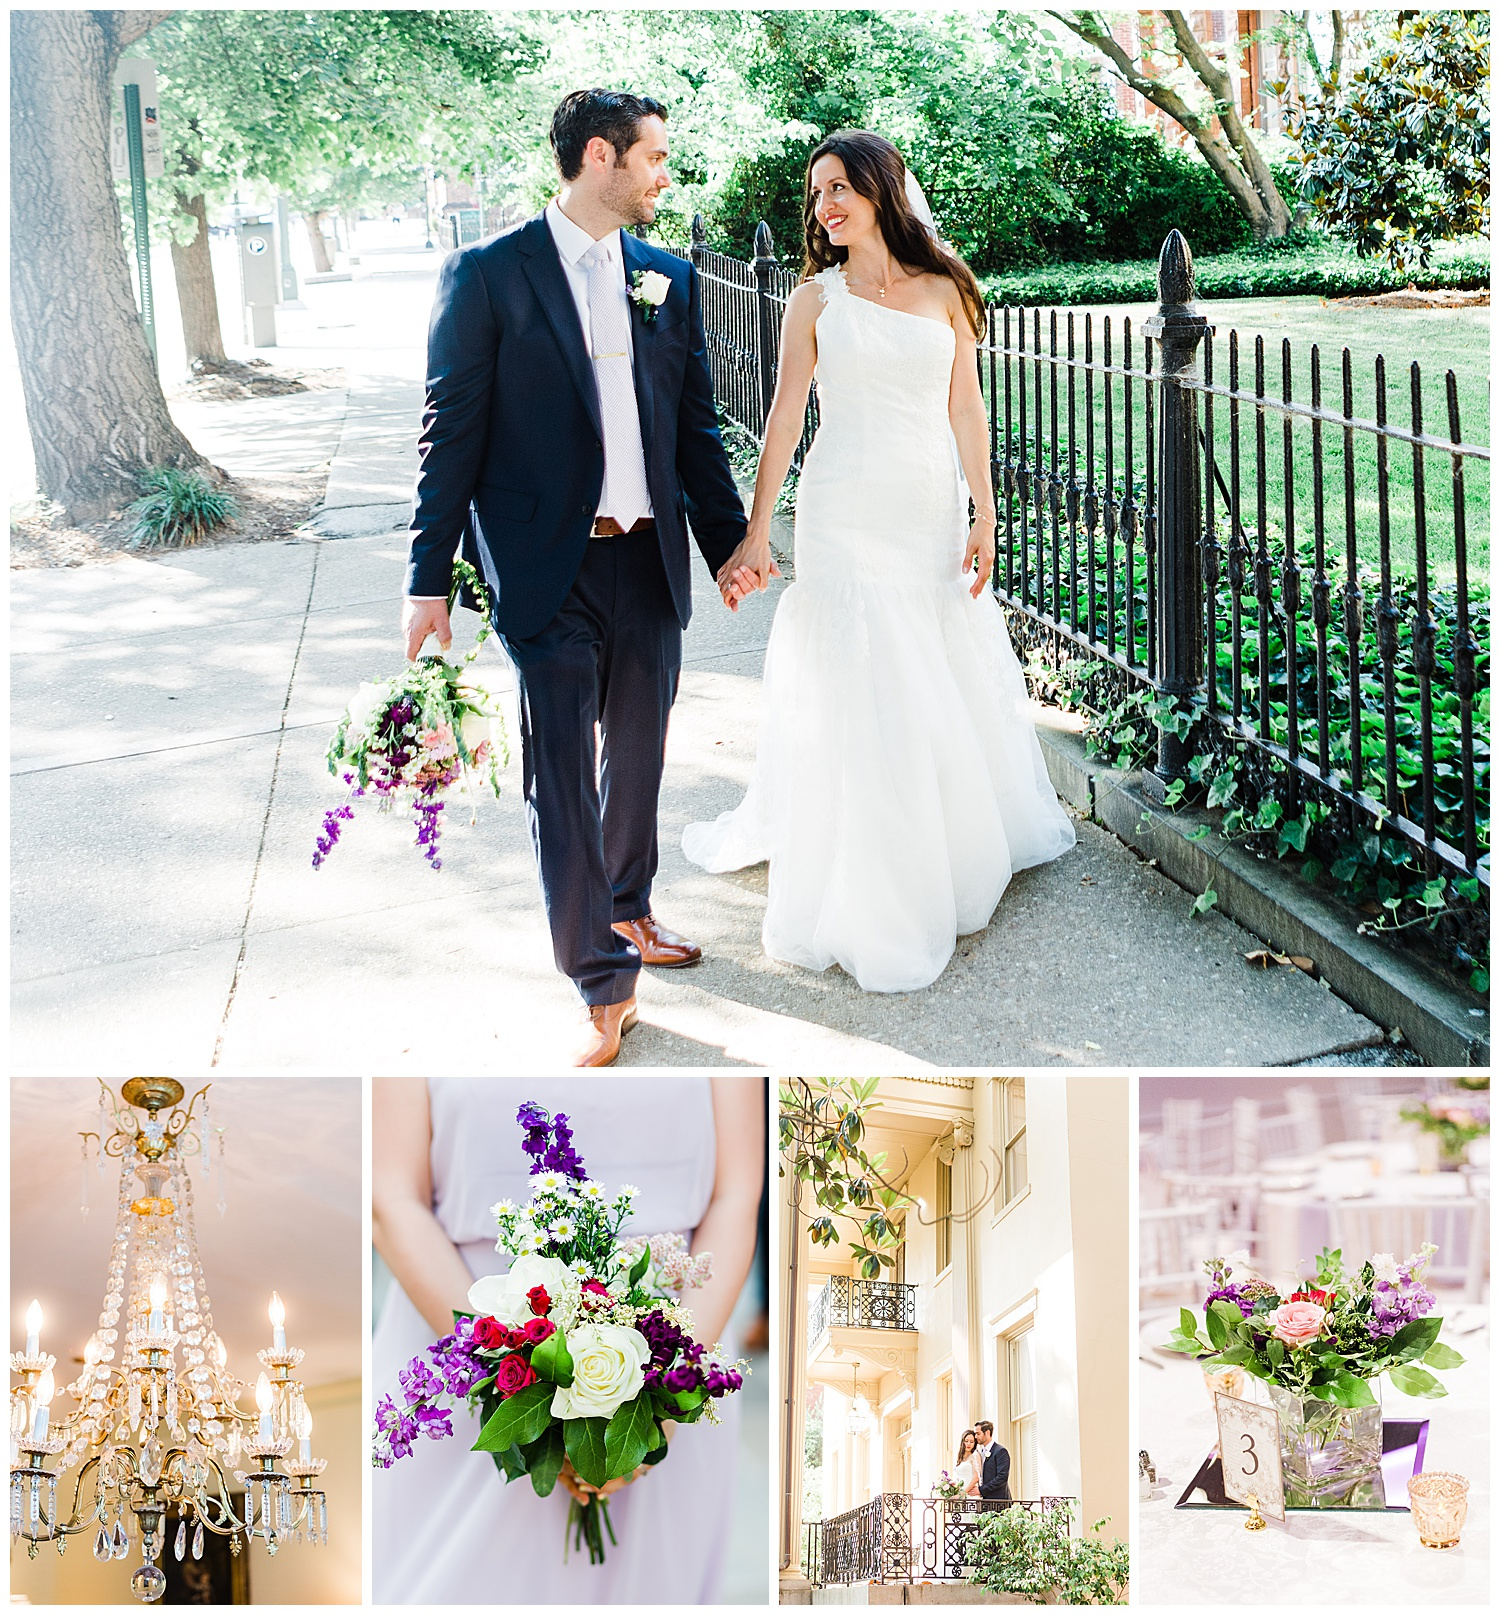 St. Stephen's Episcopal Church and The Brownstone Wedding | Richmond, Virginia Wedding Photographer